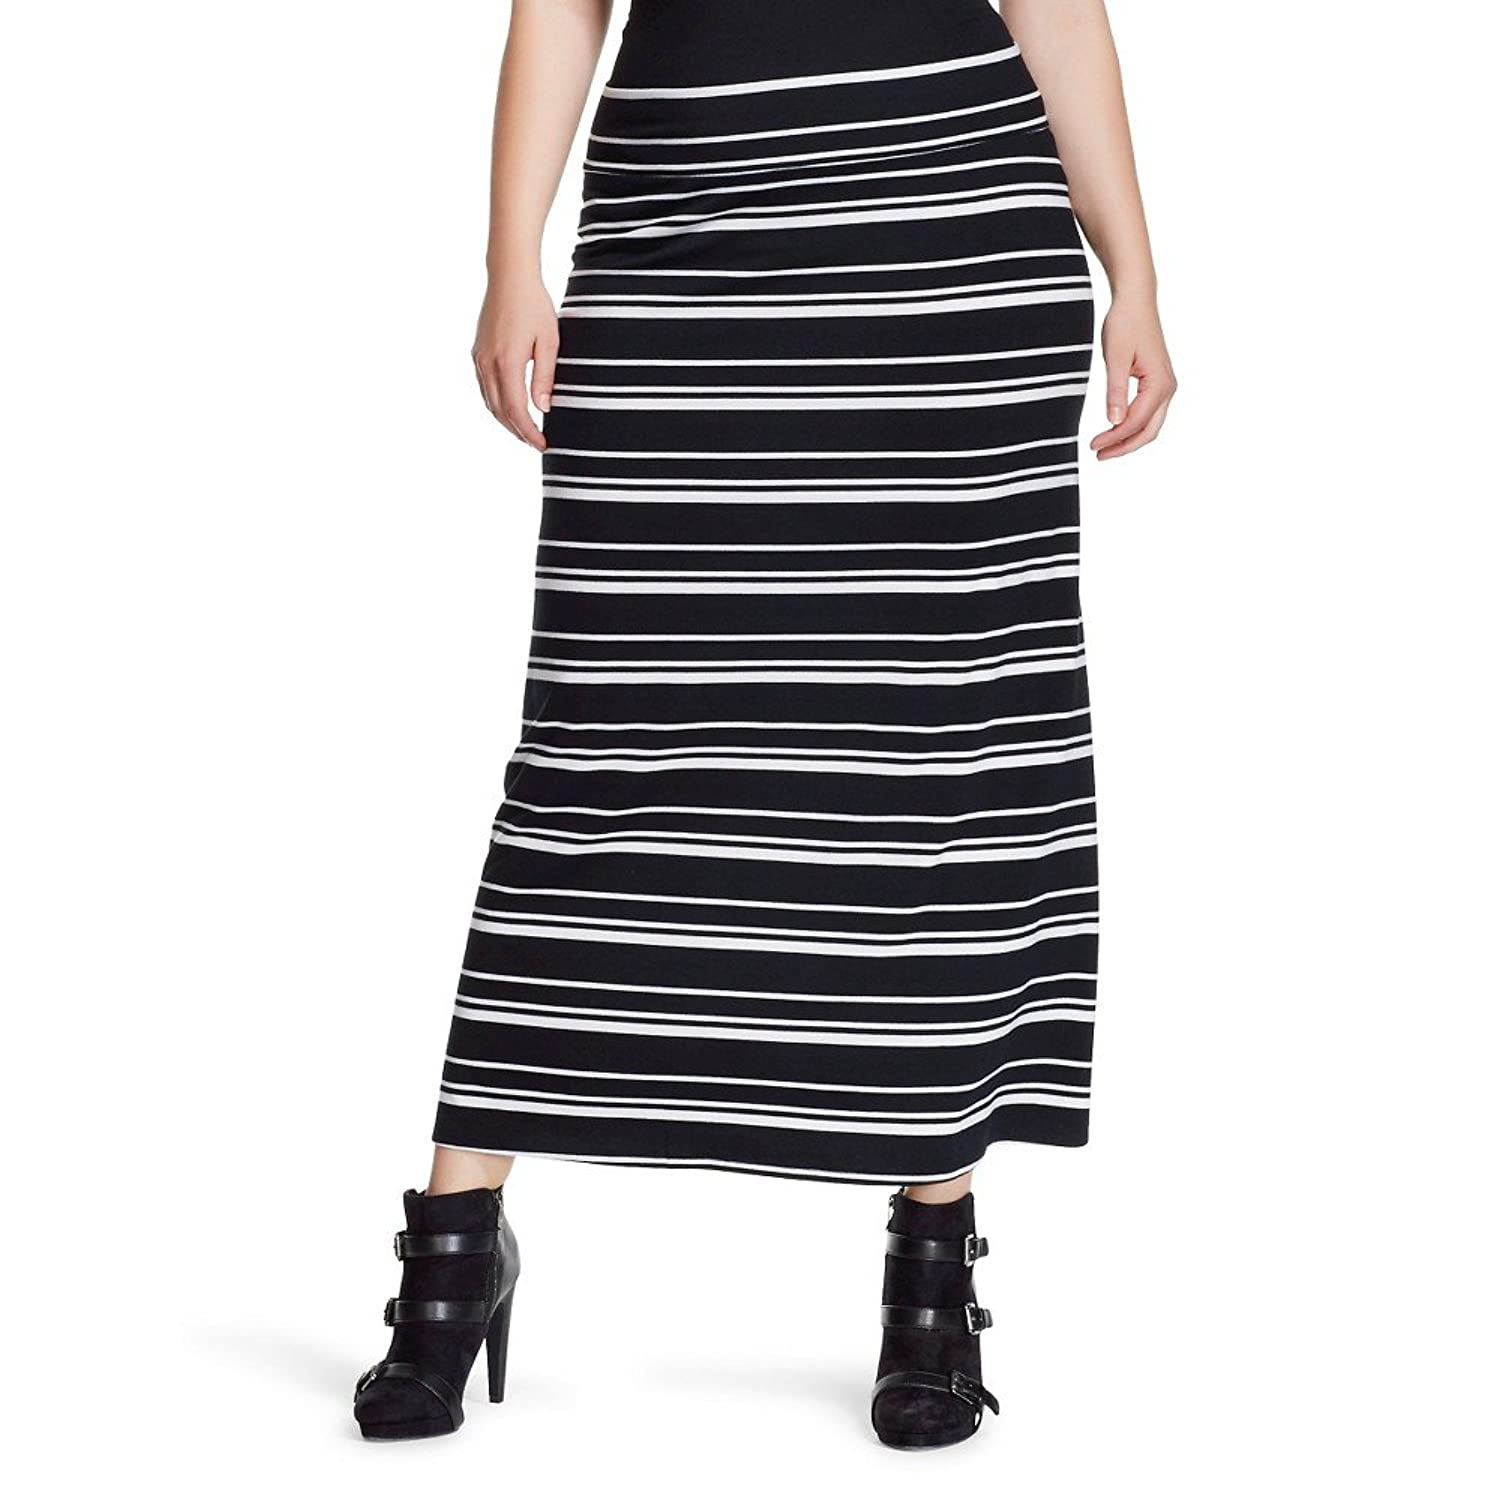 Nice Ava & Viv Women's Plus Size Knit Striped Maxi Skirt free shipping